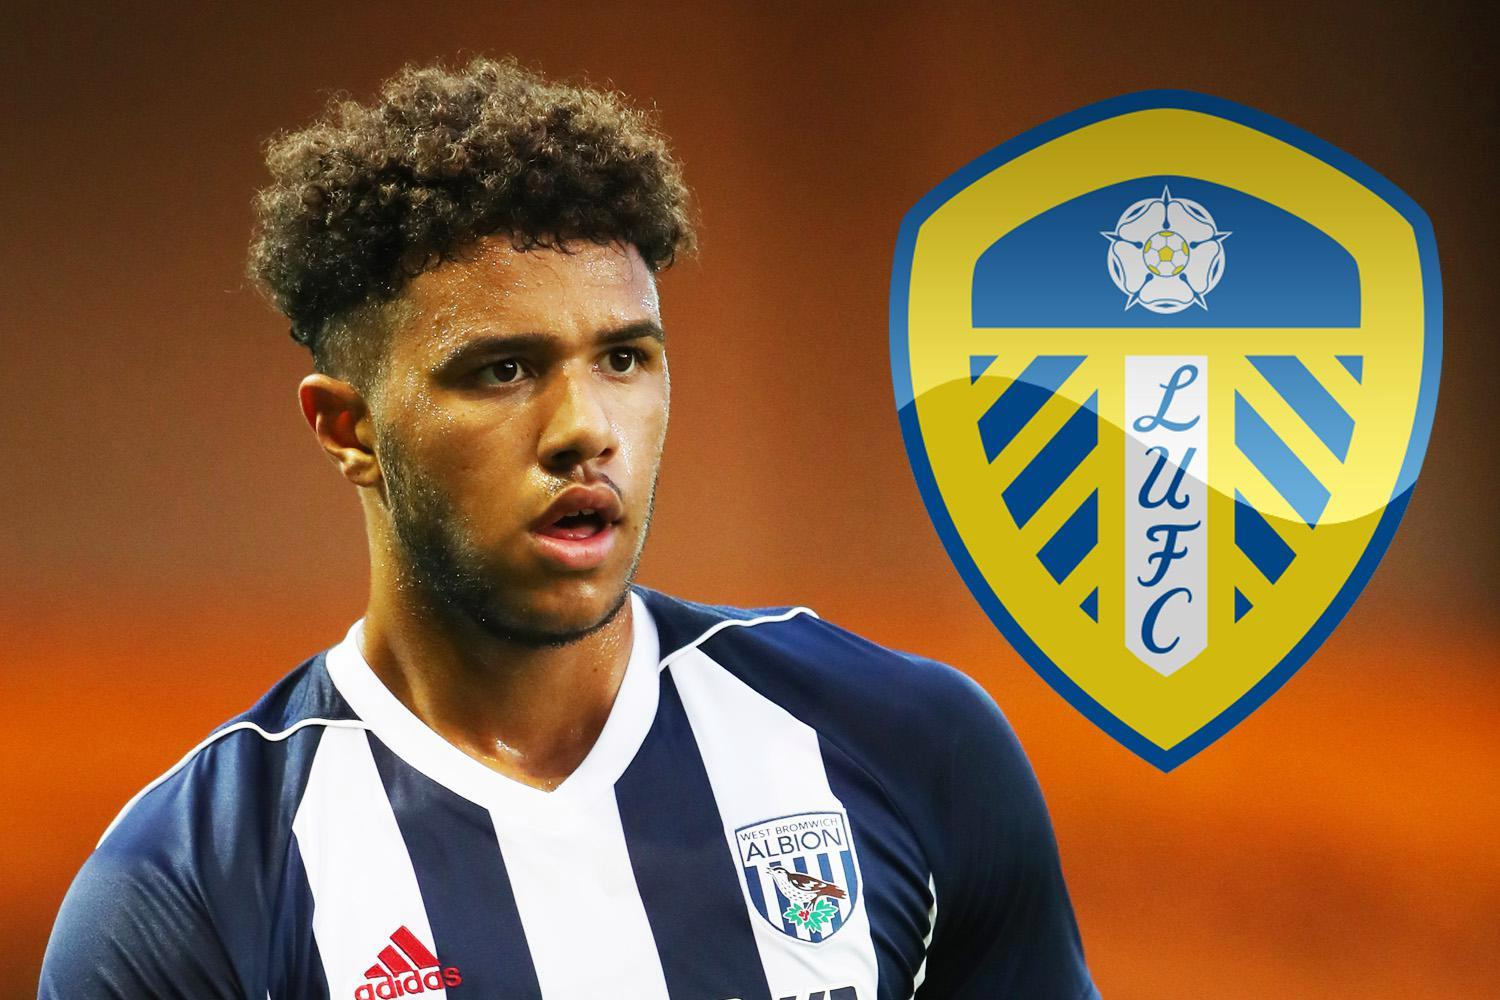 West Brom reject Leeds United £4million for teenage striker Tyler Roberts with Ranger and Marseille monitoring situation